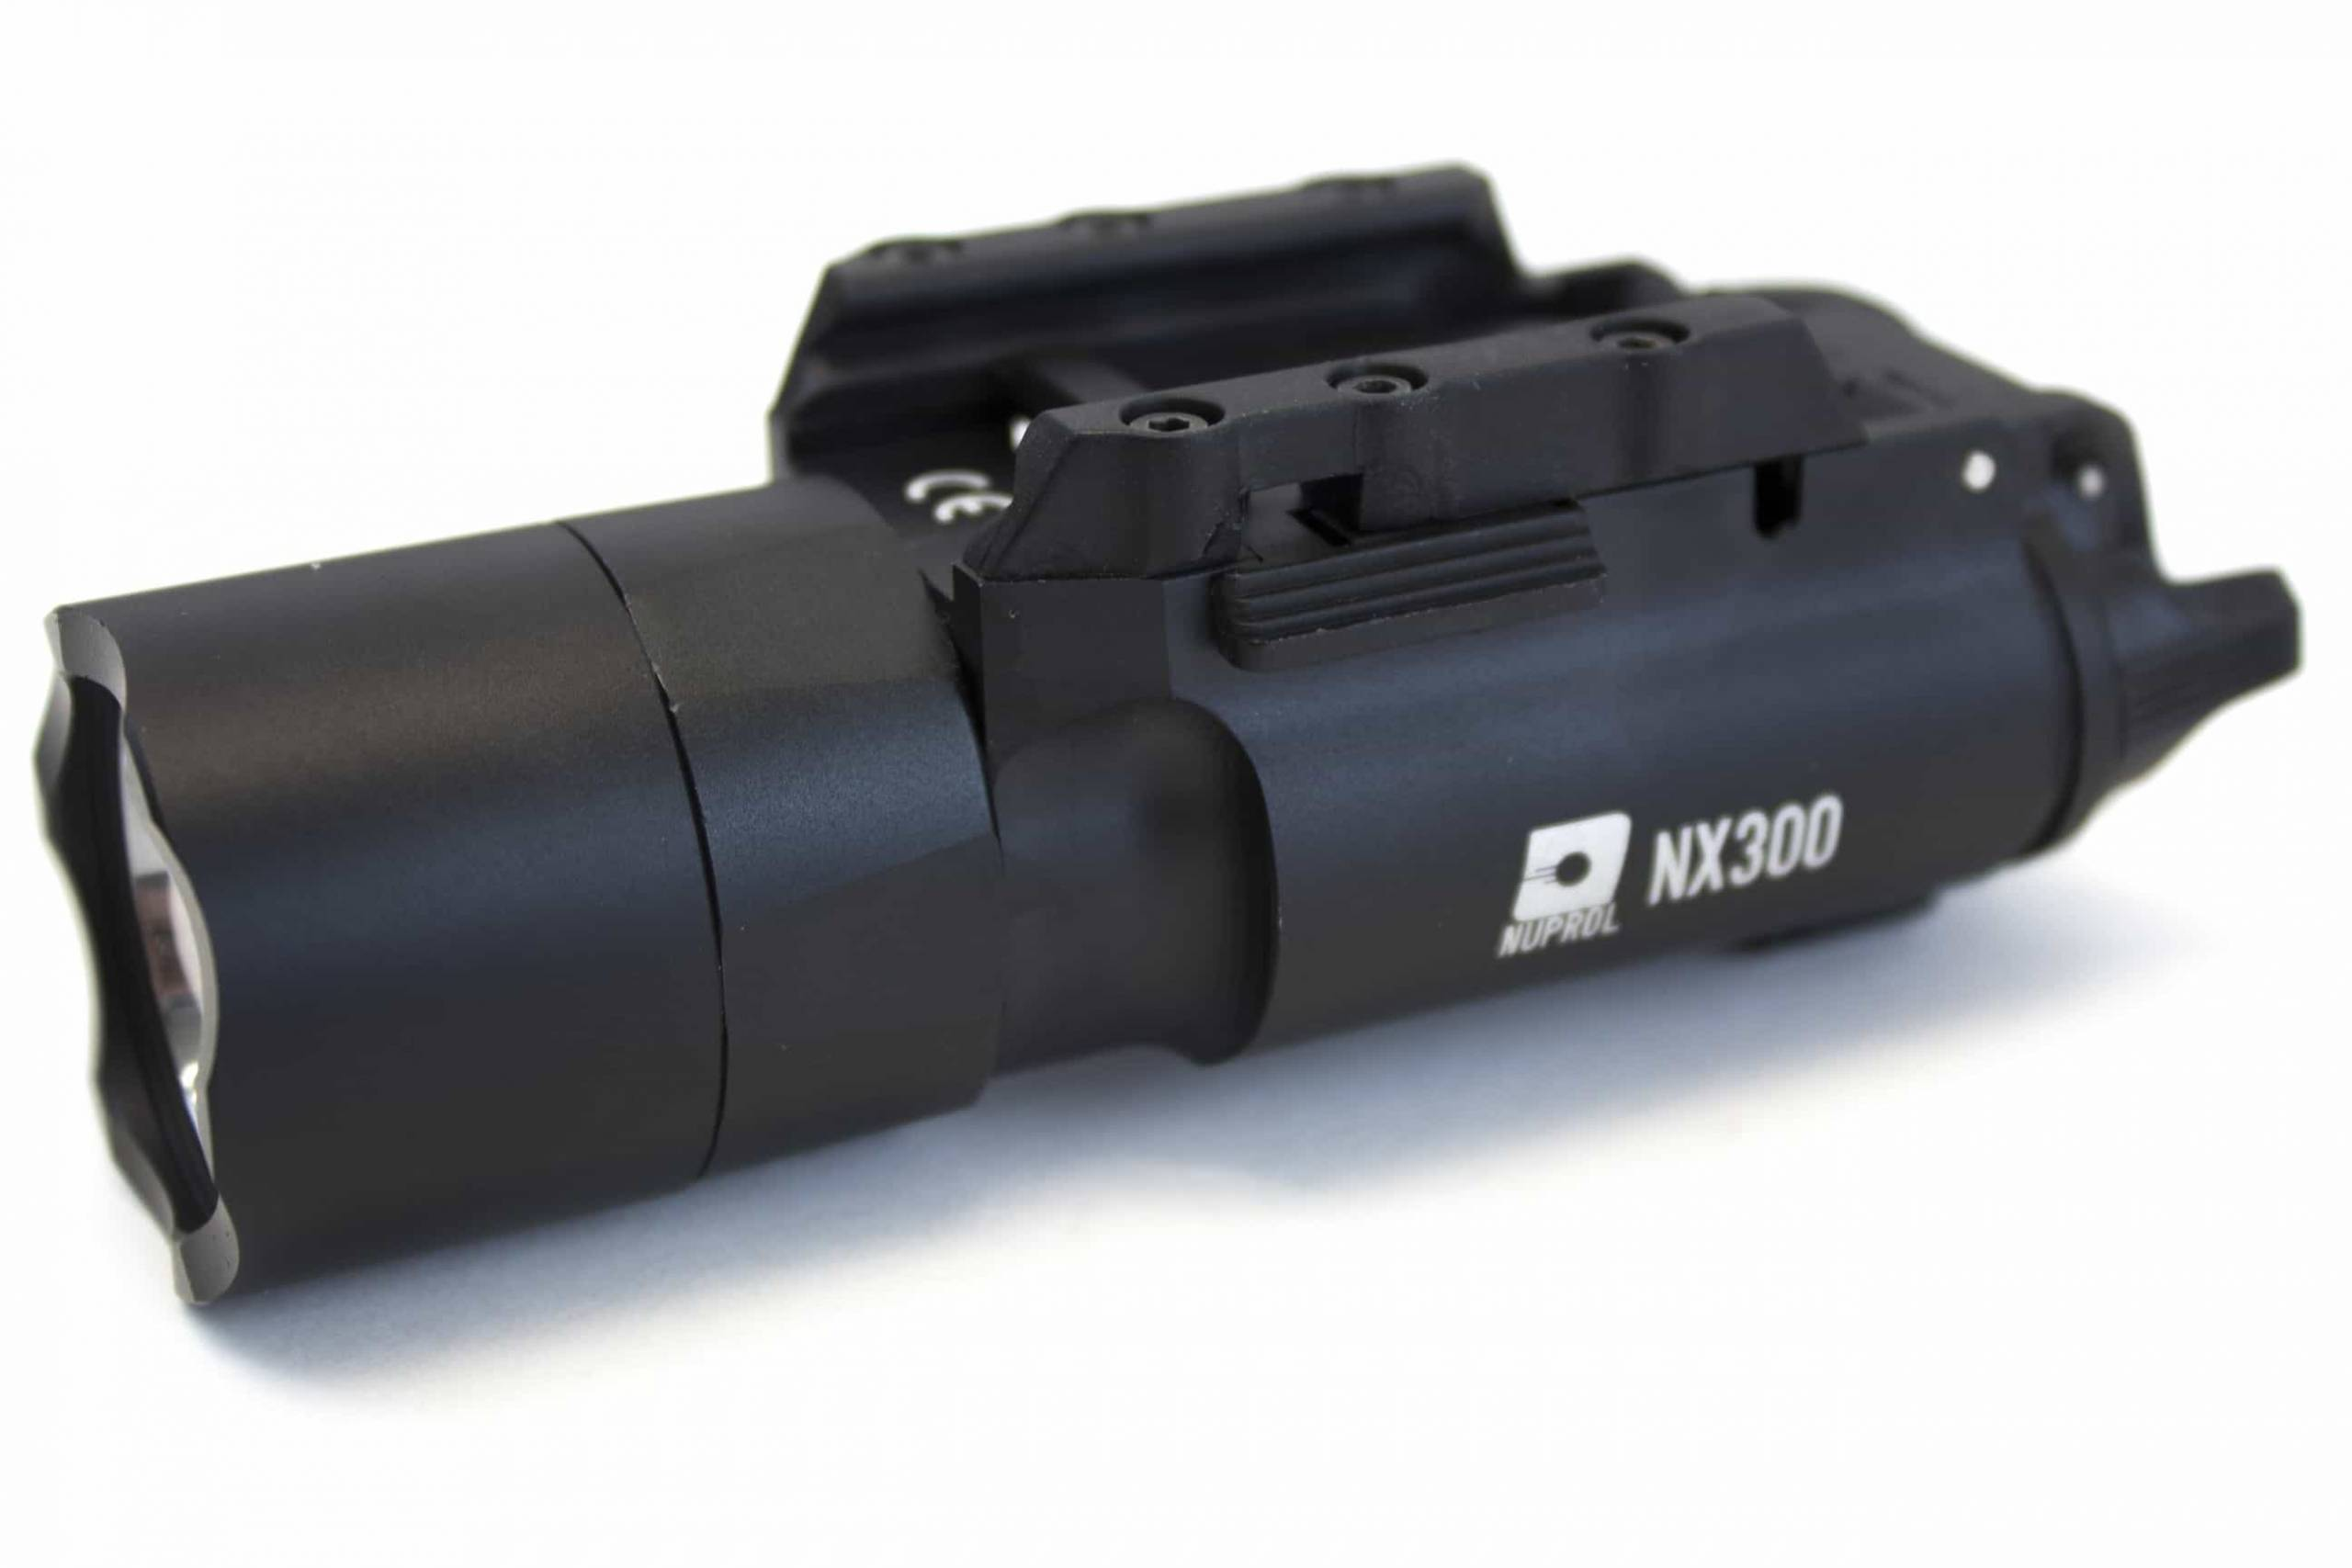 Nuprol NX300 Pistol Torch product image